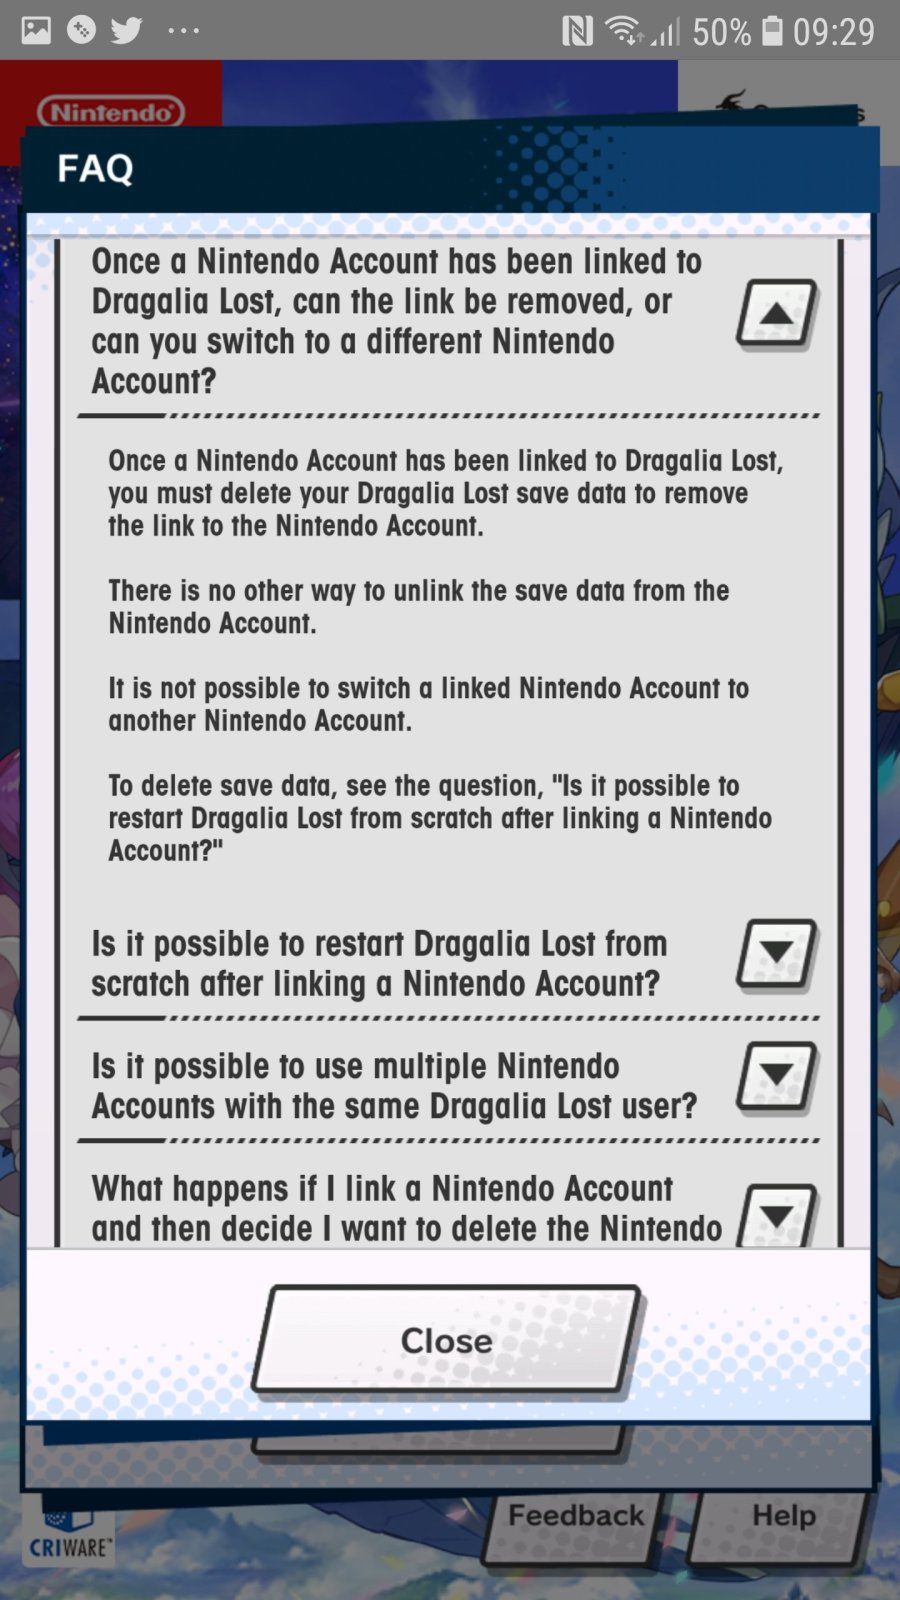 Word Of Warning Regarding Playing Dragalia Lost In Territories The Game Has Not Released In Miketendo64